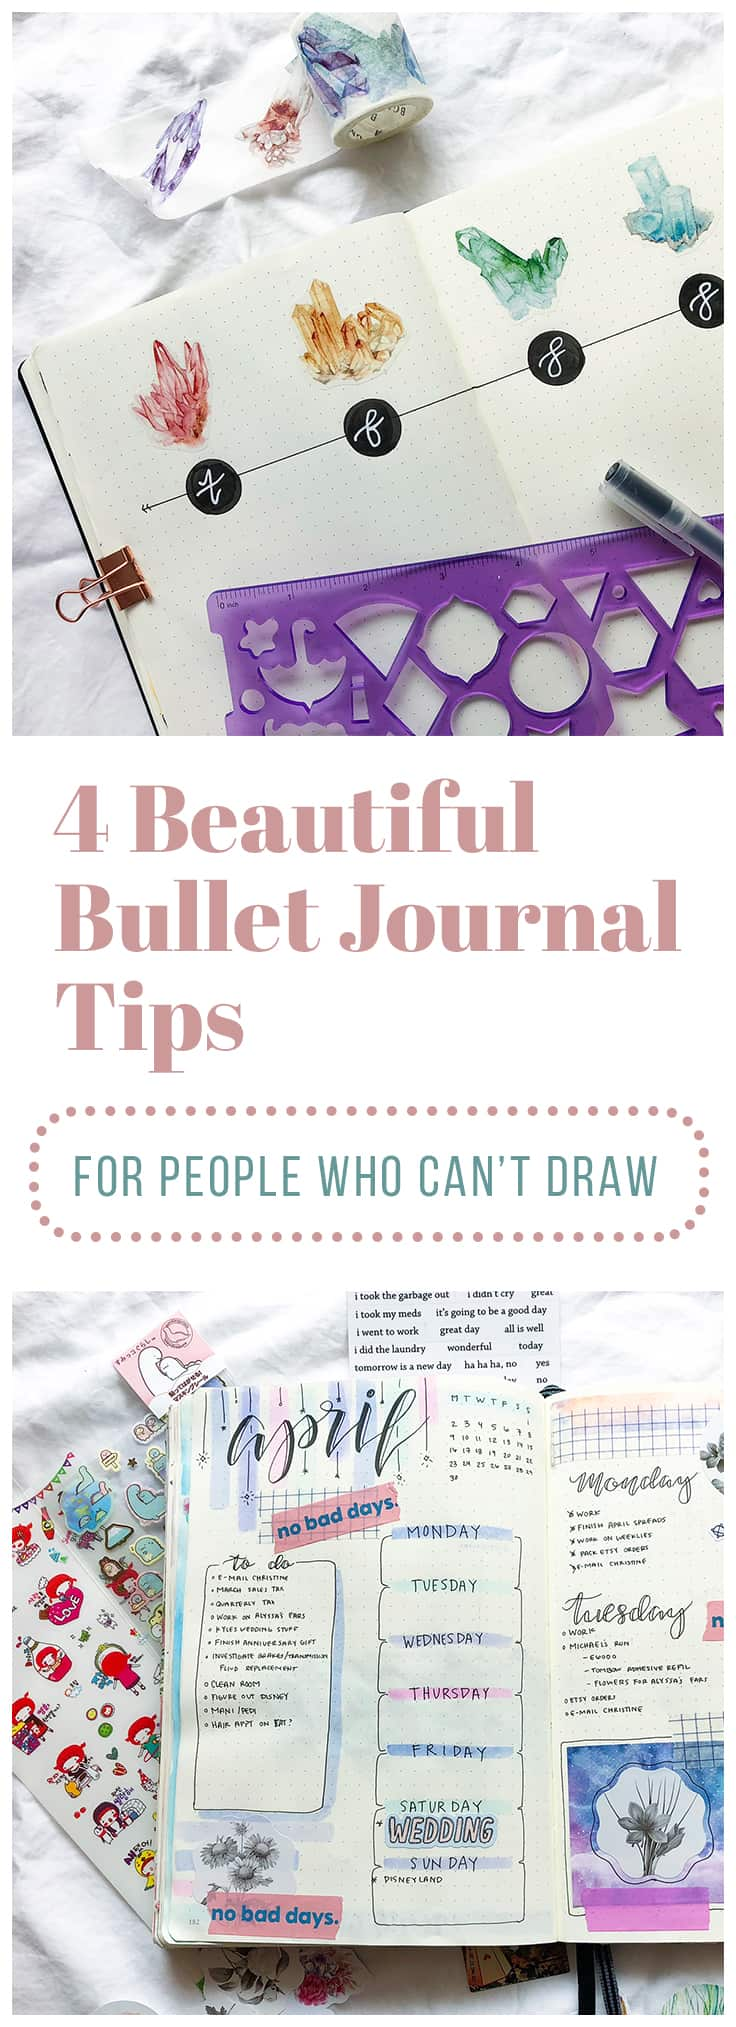 Some come by artistic talent naturally, and some of us struggle drawing stick figures. It's a fact of life, but it shouldn't prevent you from having a beautiful bullet journal! Luckily, there are plenty of bullet journal hacks out there that can help. Here are a few of my favorite ways to liven up my spreads that don't require any sort of artistic talent!  #bulletjournal #bulletjournaltips #bulletjournalhacks #planner #minimalist #washitape